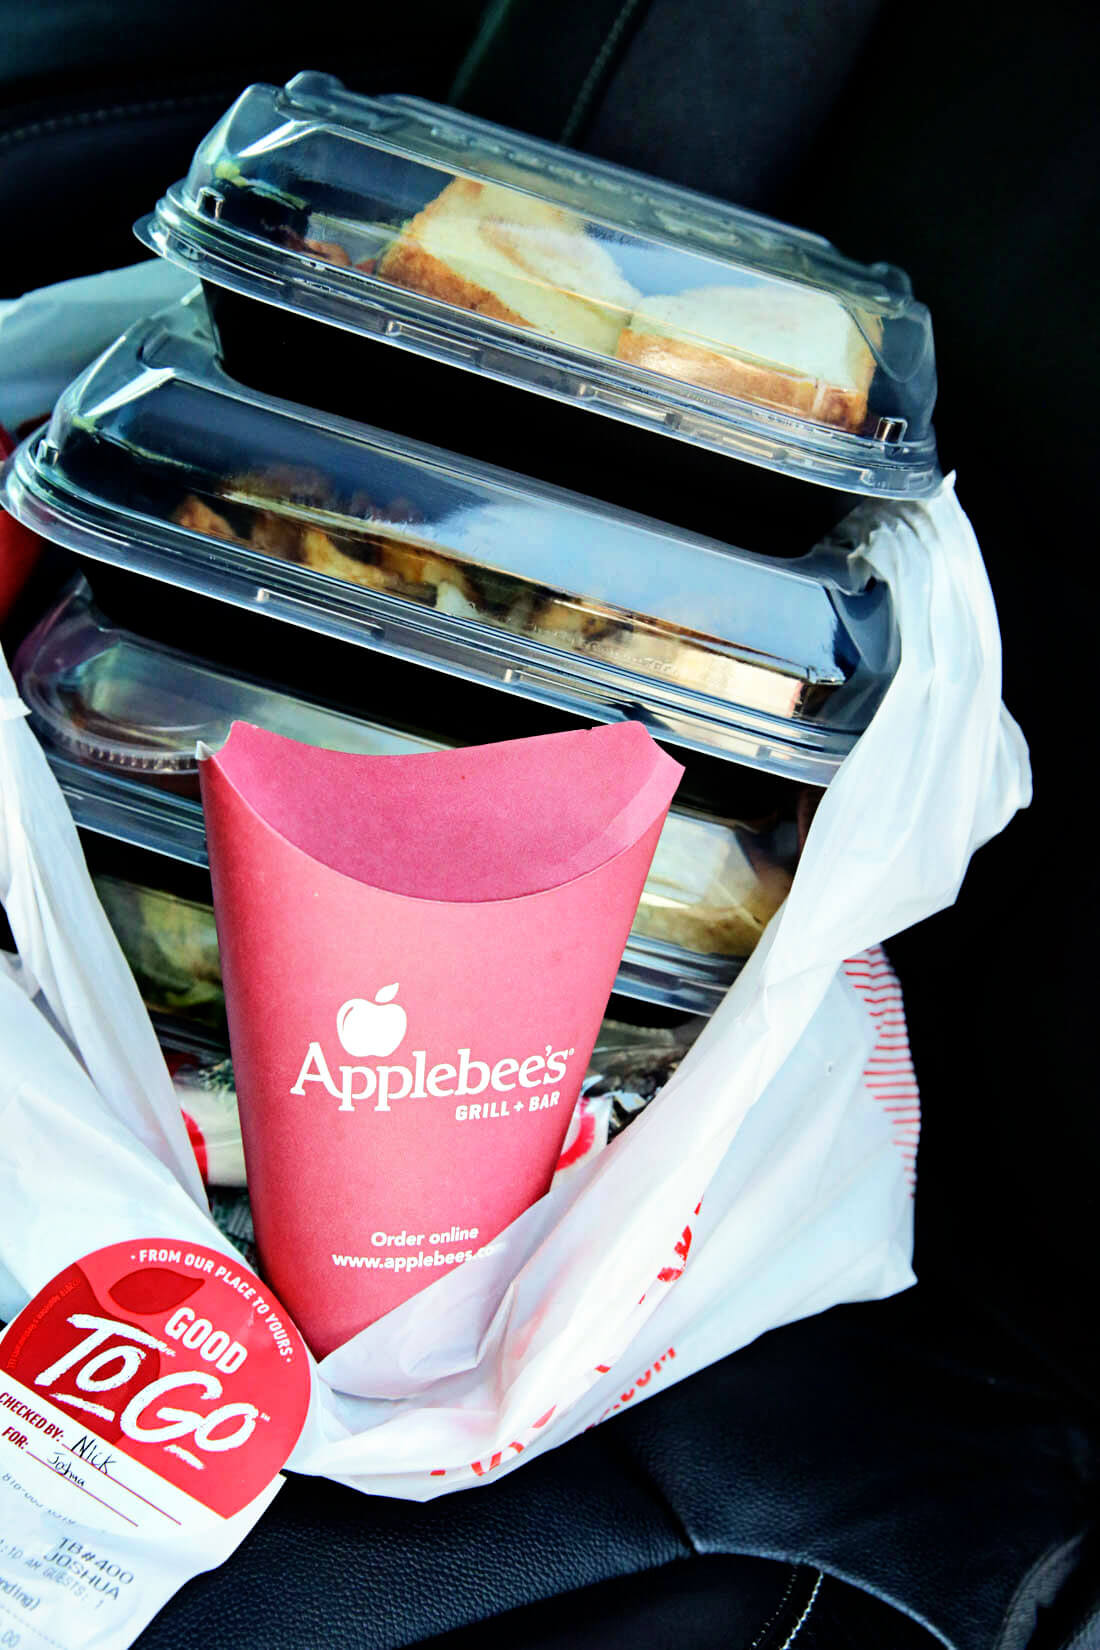 Our food from Applebee's Carside to Go